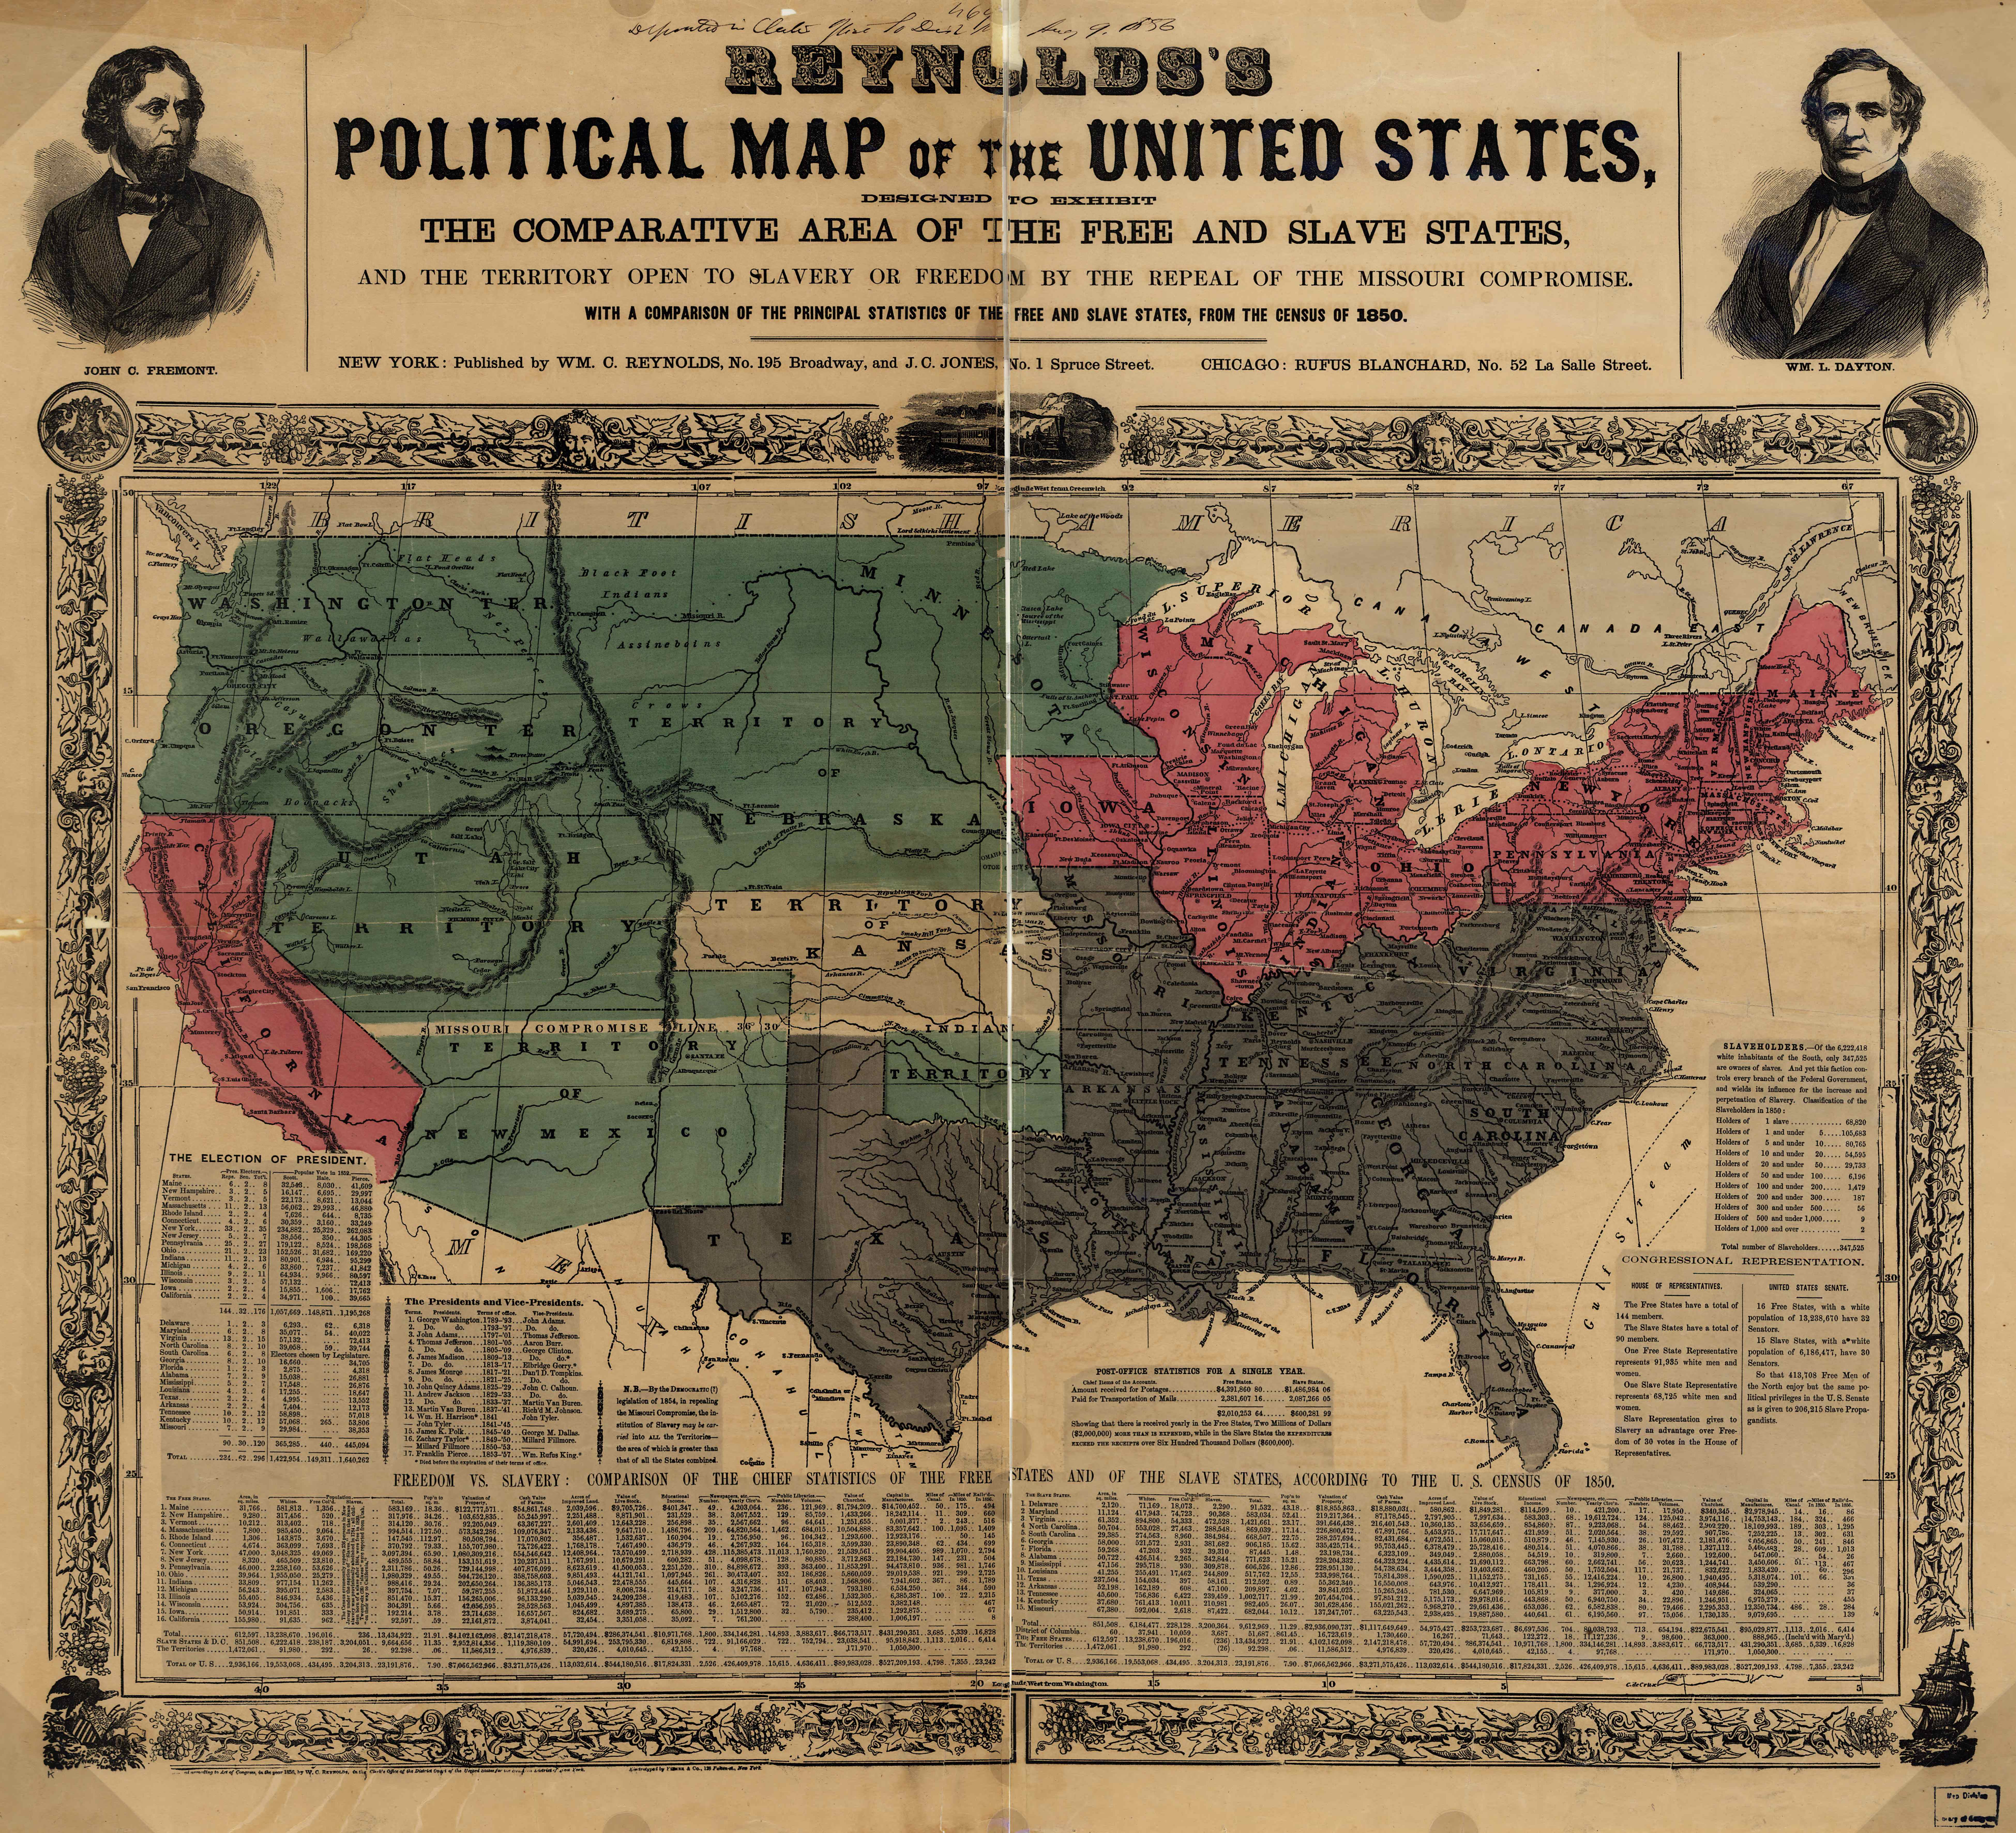 reynolds-political-map-of-the-united-states_31